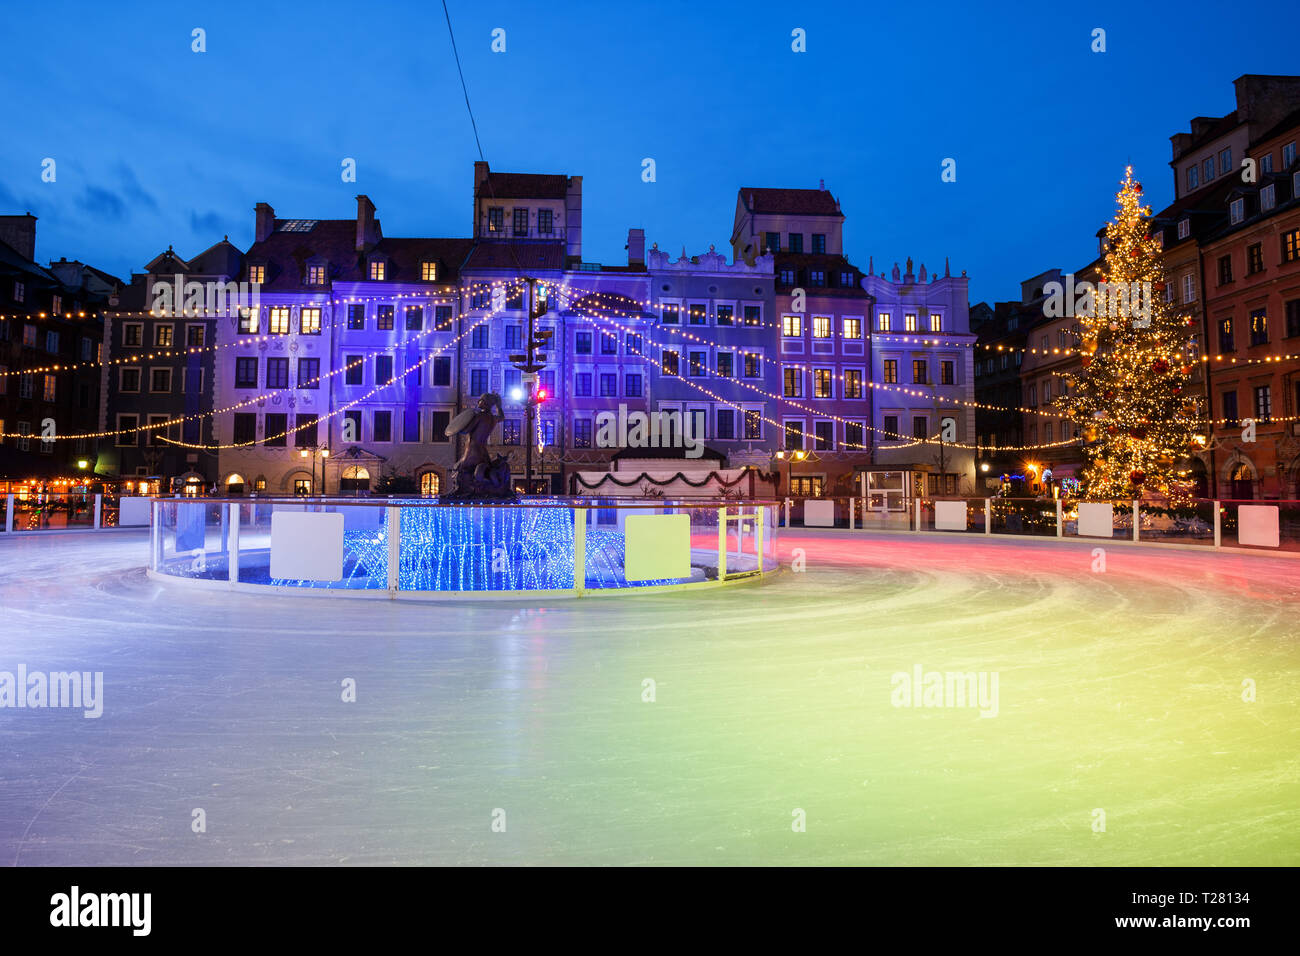 Ice skating rink on Old Town Square in city of Warsaw at night during Christmas time in Poland. - Stock Image